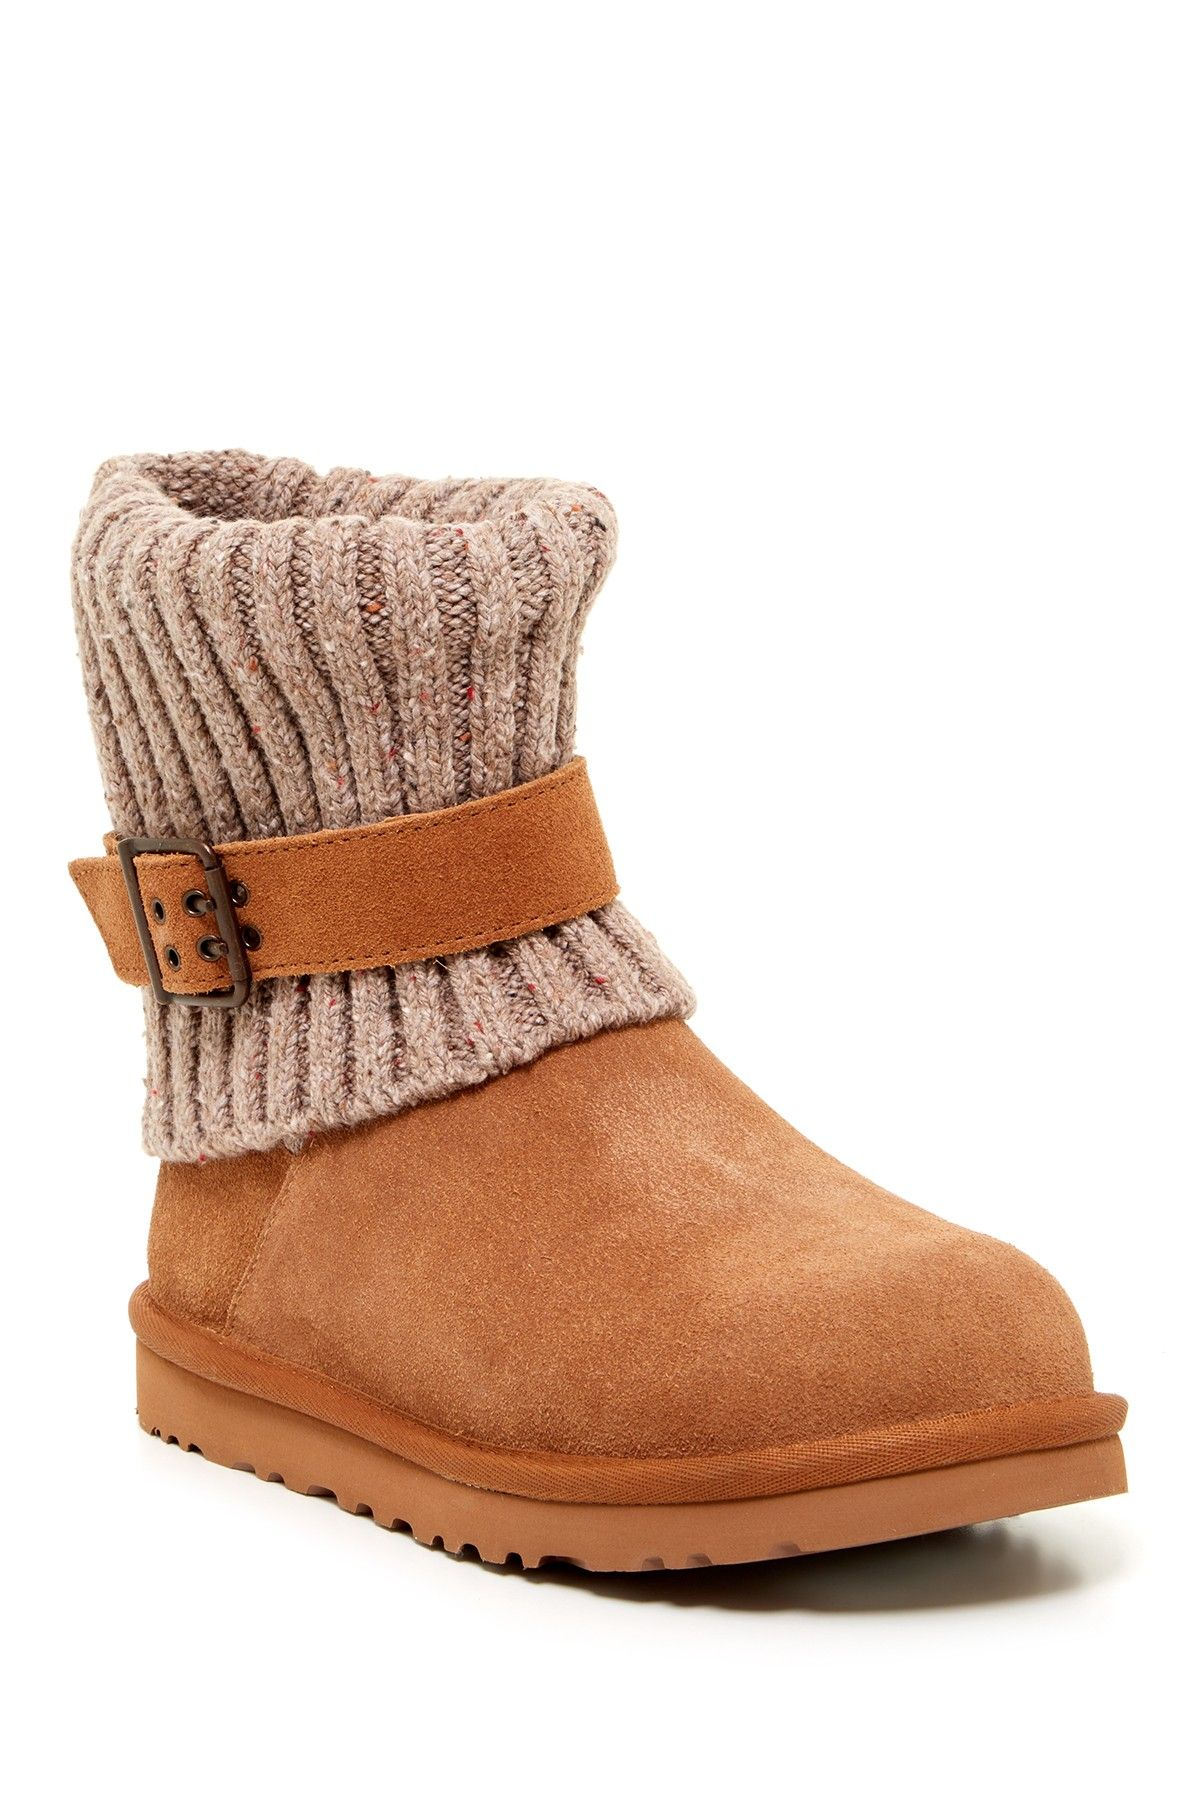 Ugg Tan Suade & Knit Boots Size 7